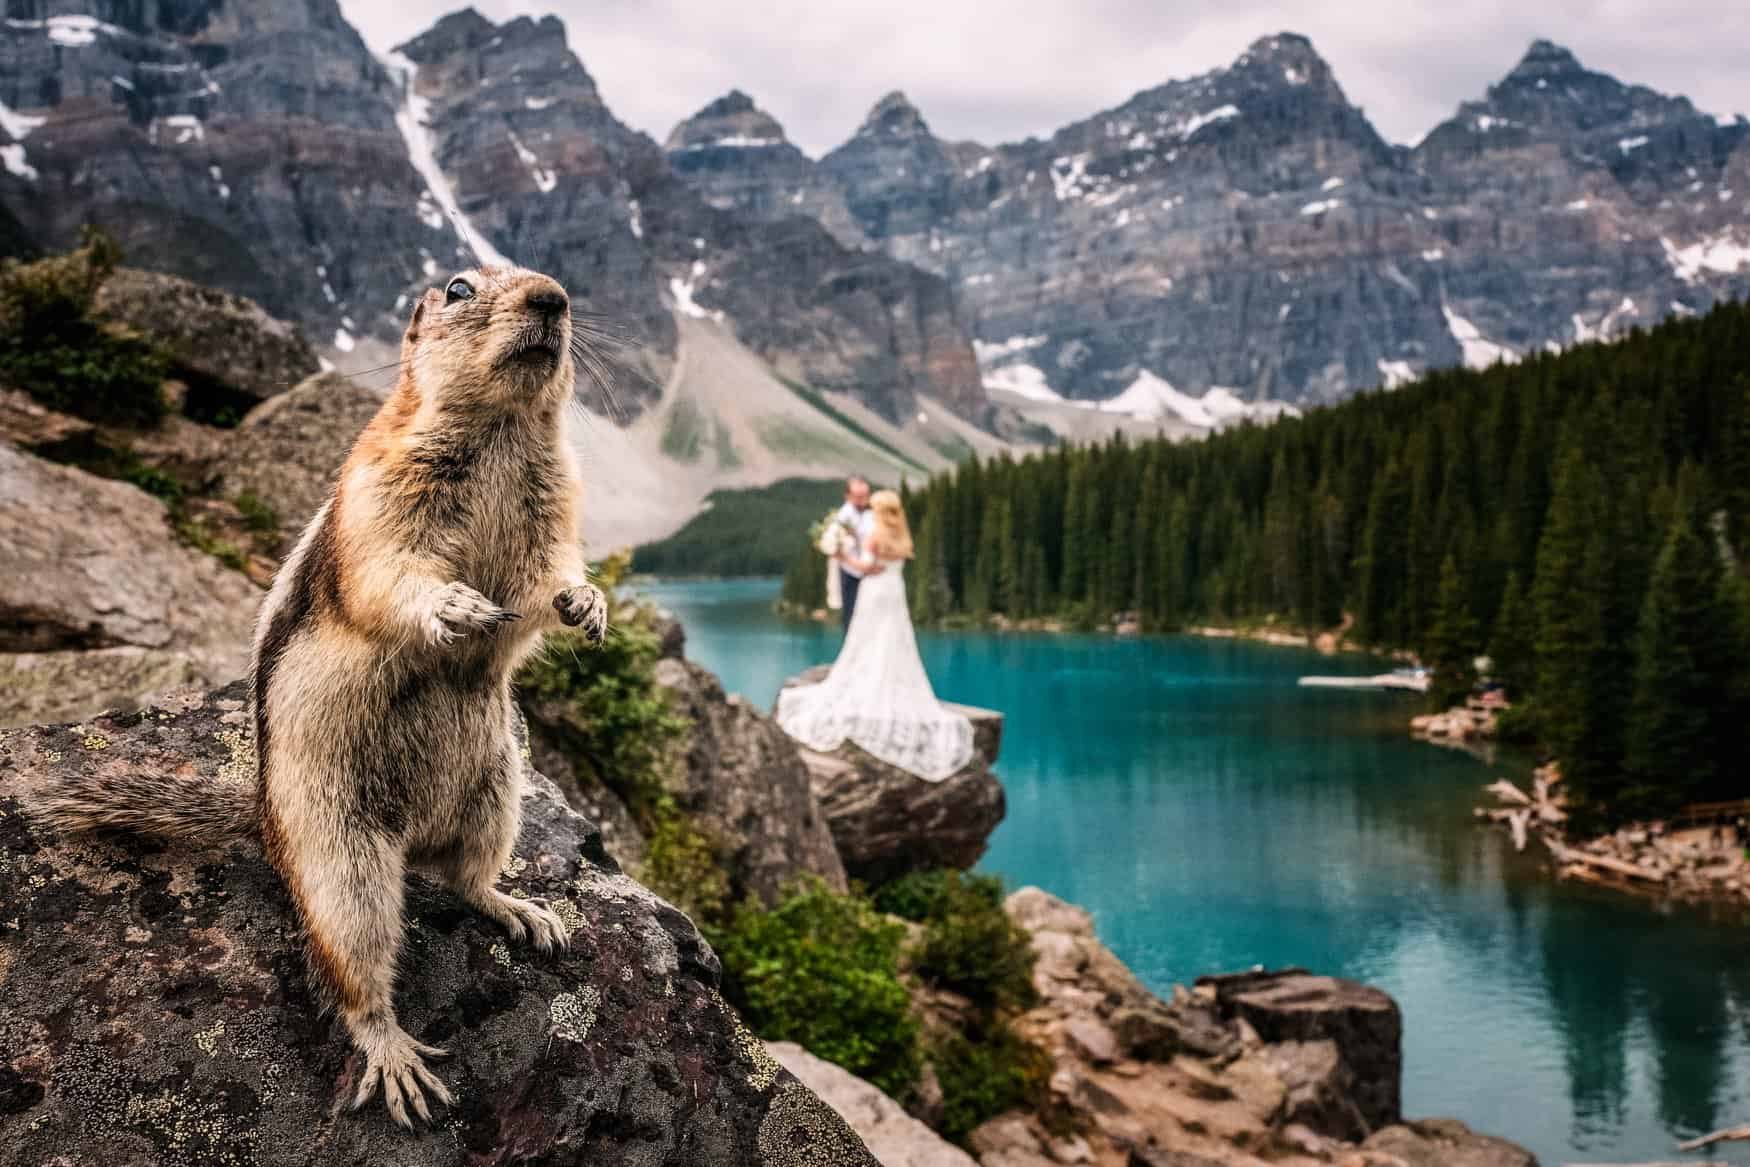 The Very Best Photos Of Beautiful Animals In 2019